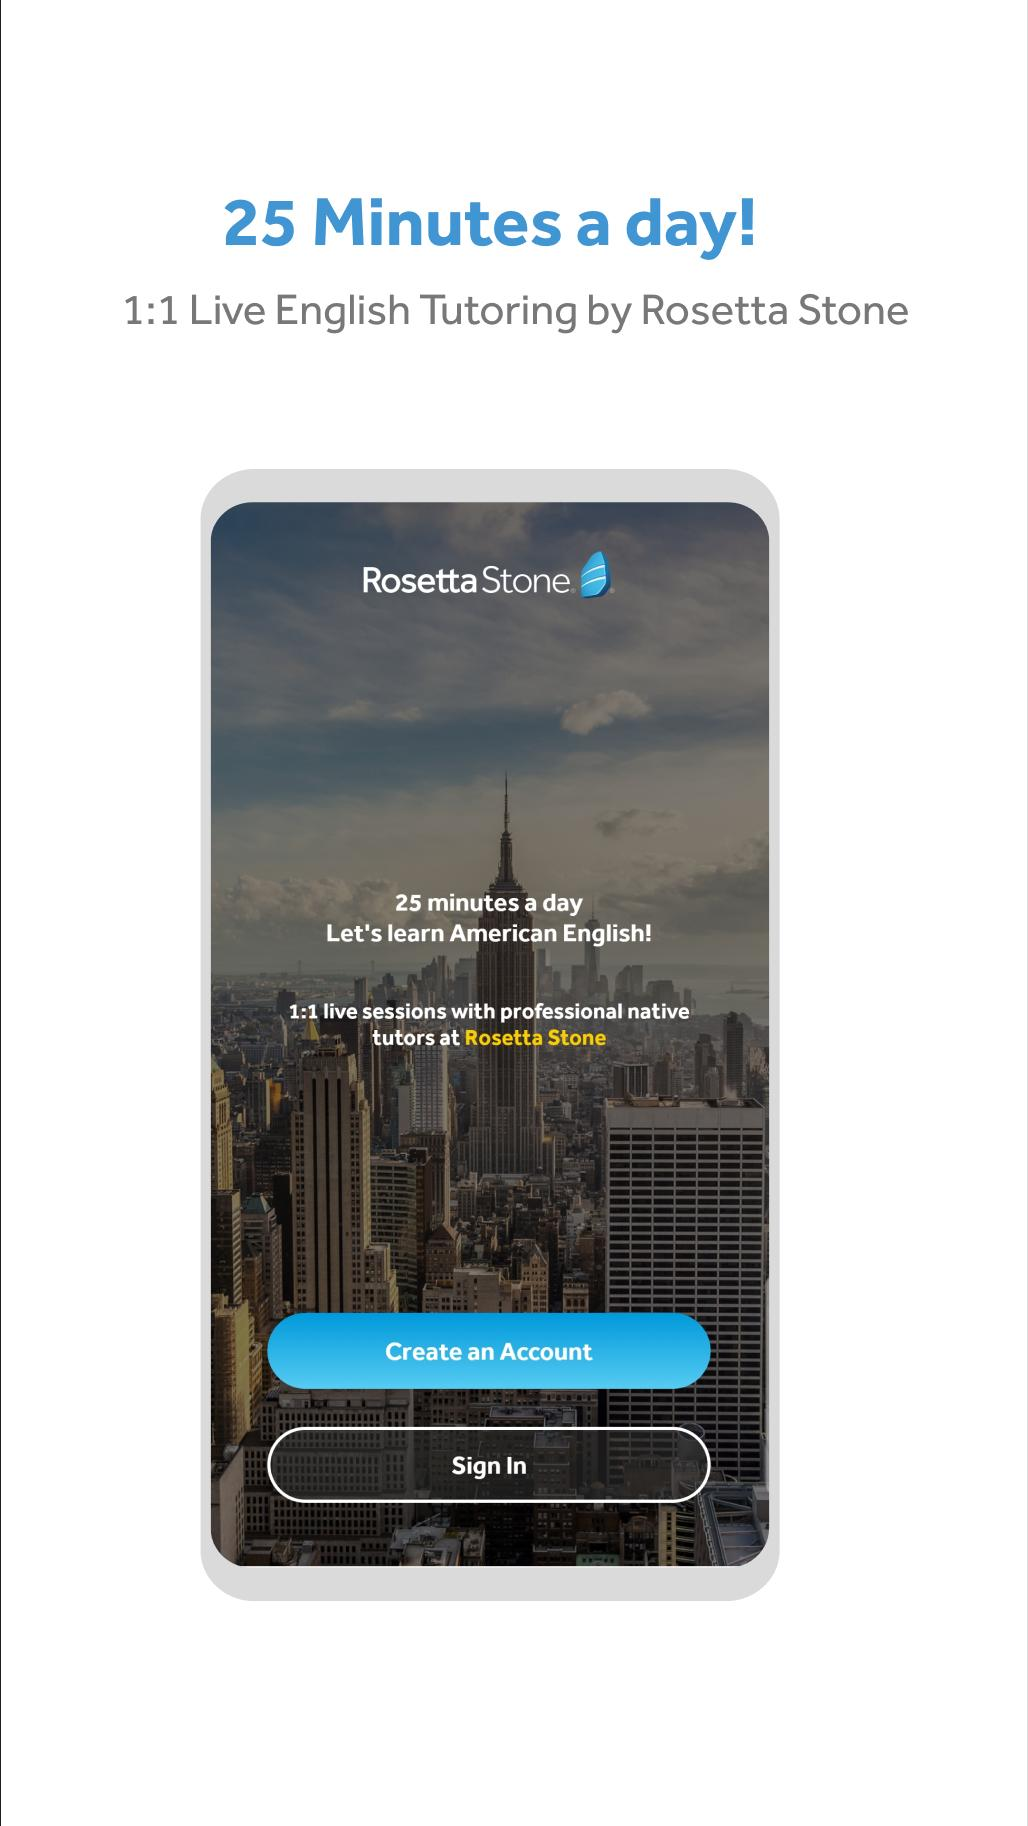 Rosetta Stone English Live Tutoring for Android - APK Download